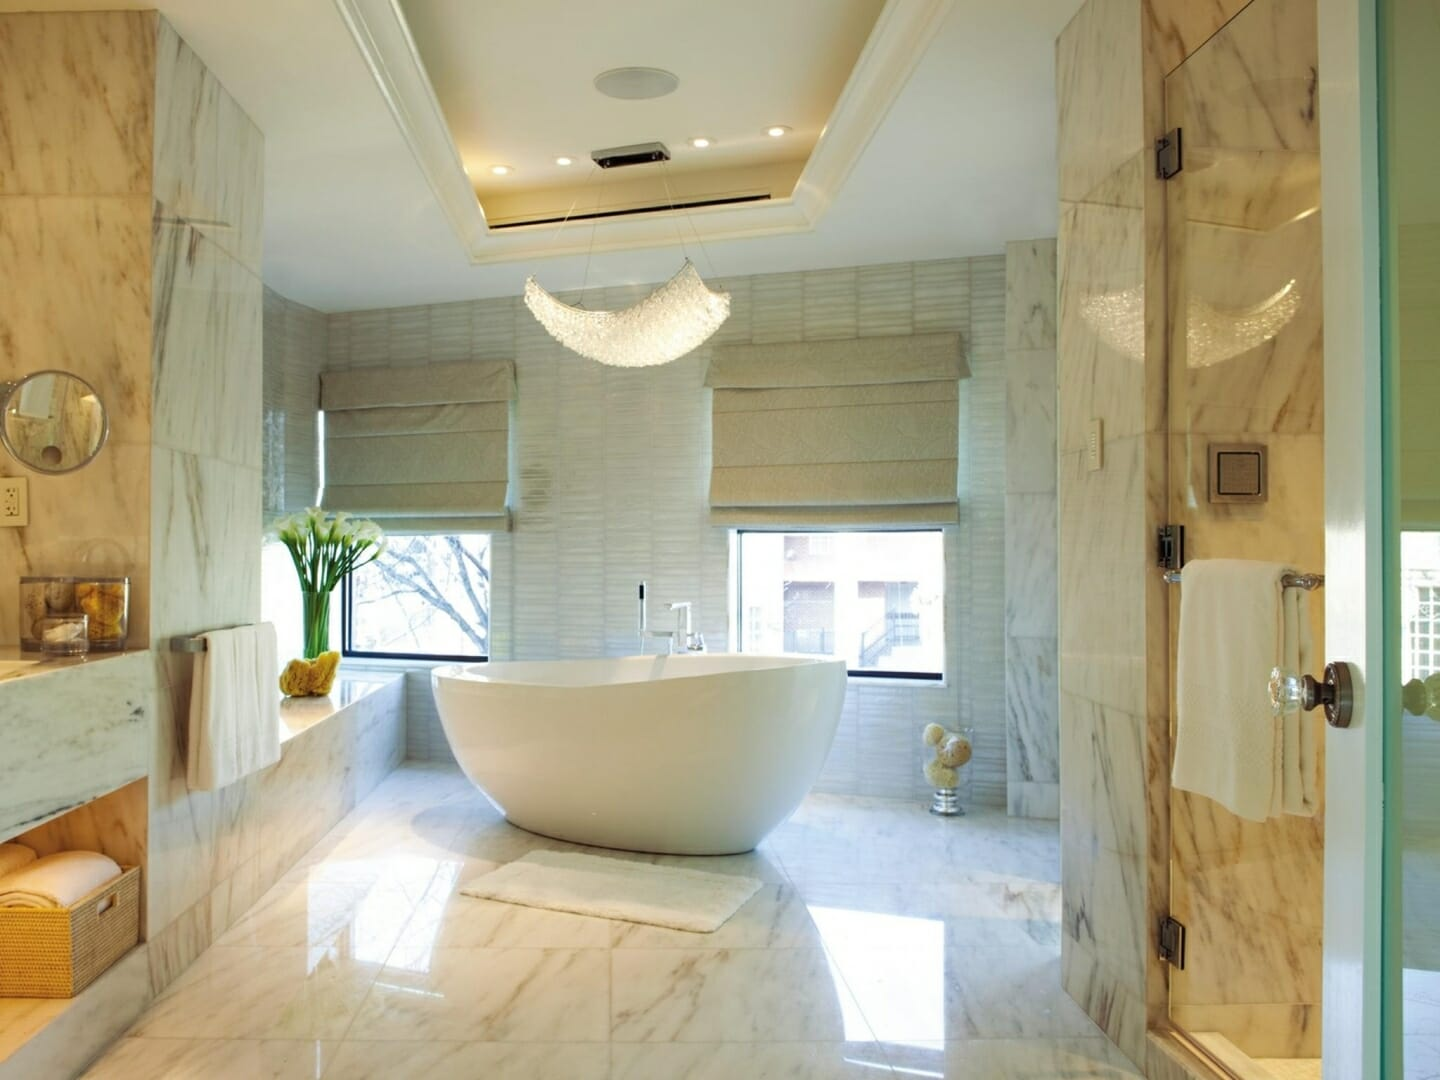 Bathroom designs pictures with tiles - Marble Tiles Bathroom